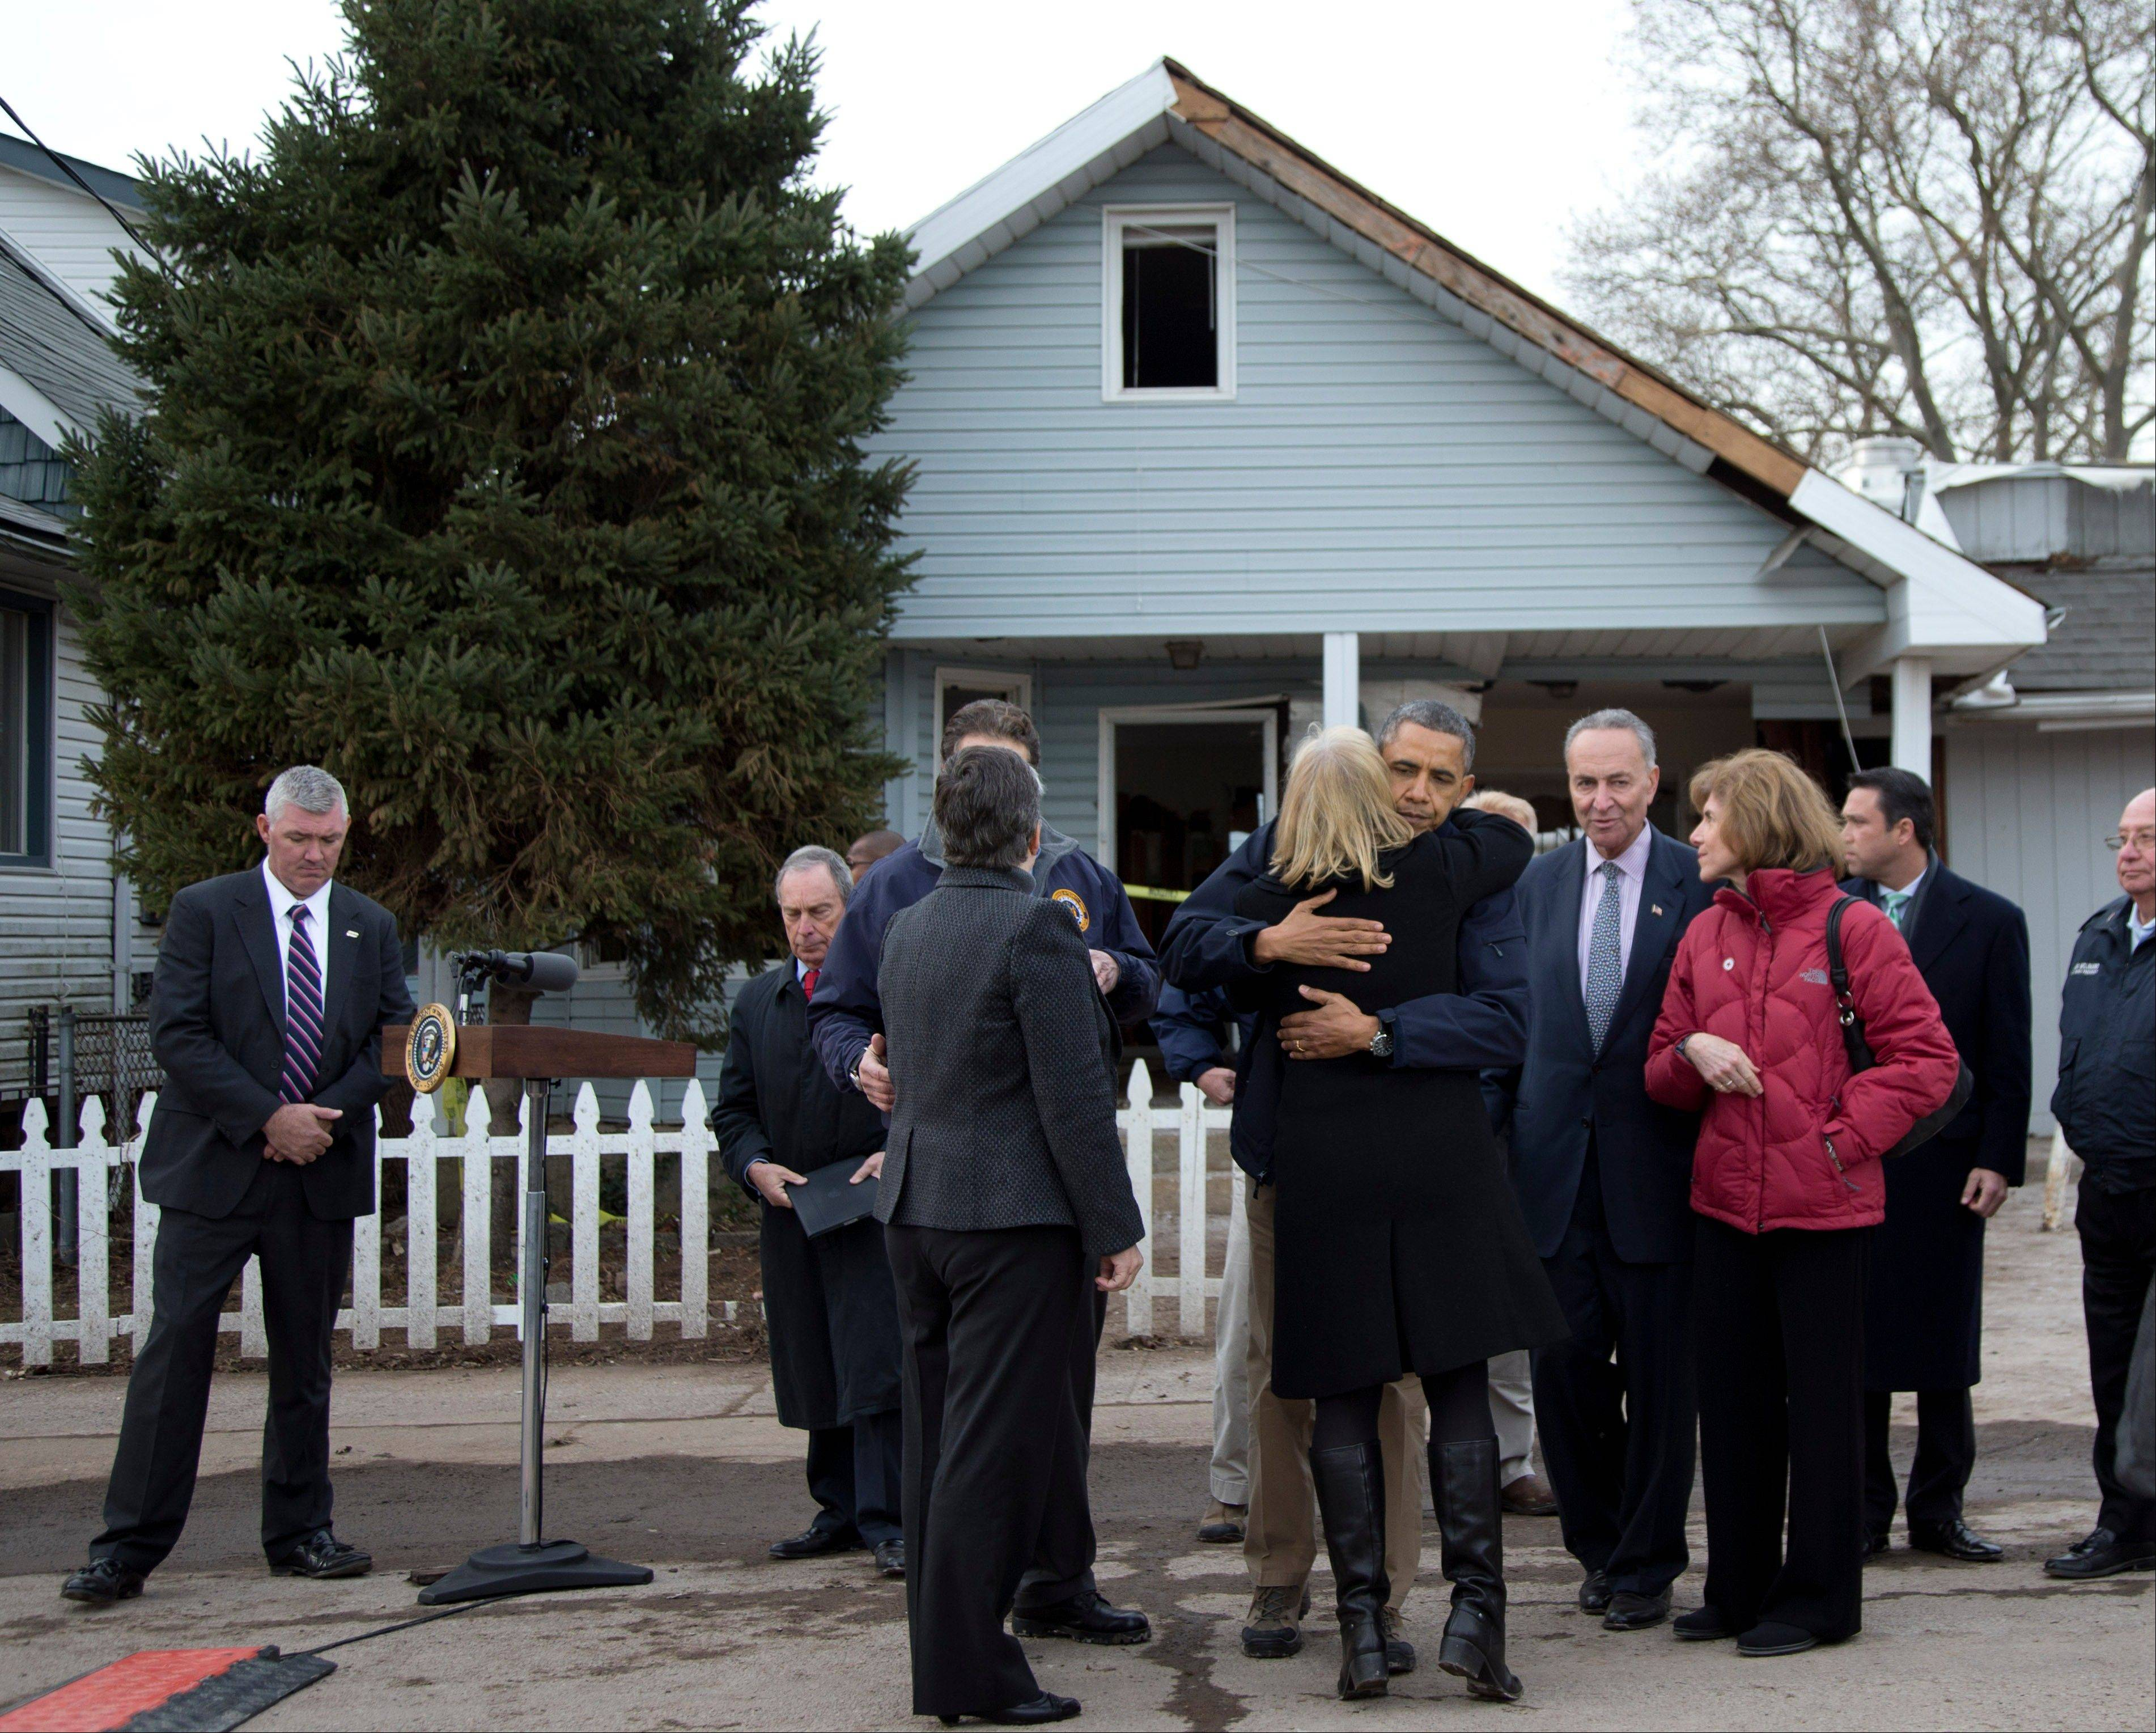 ASSOCIATED PRESS President Barack Obama, accompanied by New York City Mayor Michael Bloomberg, New York Gov. Andrew Cuomo, Homeland Security Secretary Janet Napolitano, Sen. Charles Schumer and others, hugs Sen. Kirsten Gillibrand after a news conference on a street significantly hit by Superstorm Sandy, Thursday on Staten Island in New York.